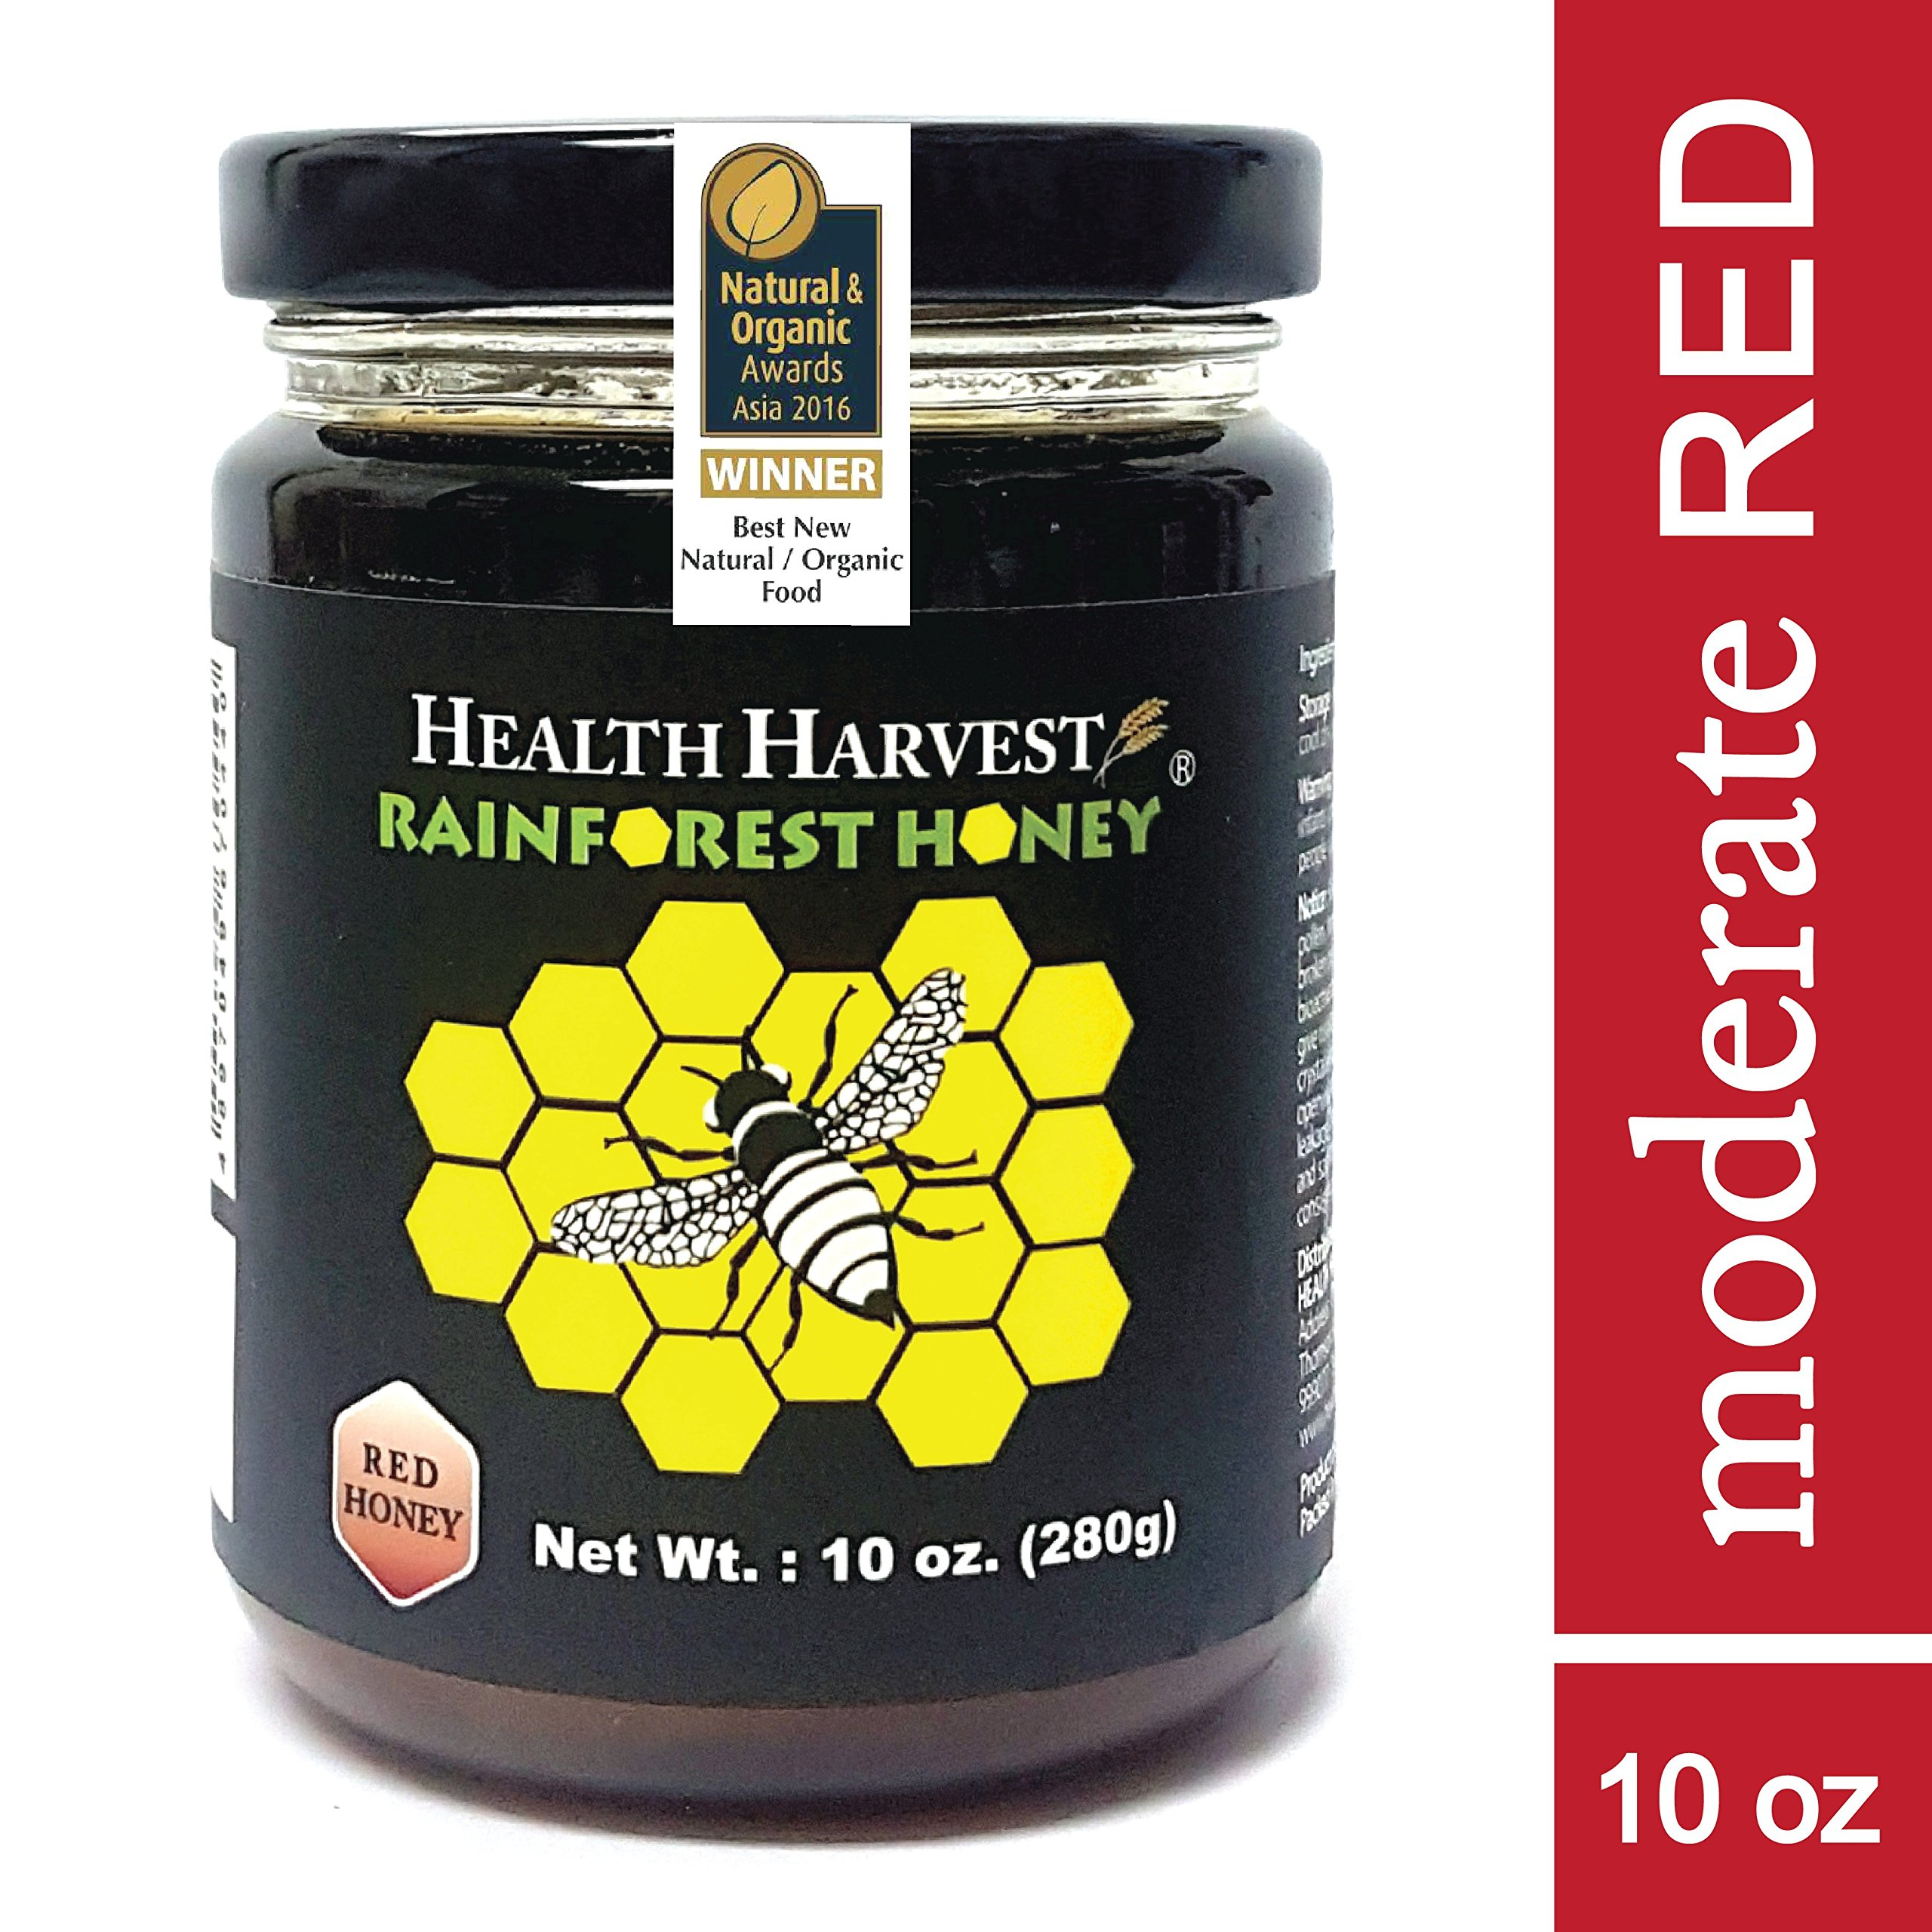 Tualang Red Honey 10 oz   Moderate Choice for Adult & Teenage Health Maintenance   Year-round Wild Harvested from Sumatra Tropical Rainforest   Raw, Unpasteurized, Unfiltered   Award-Winning